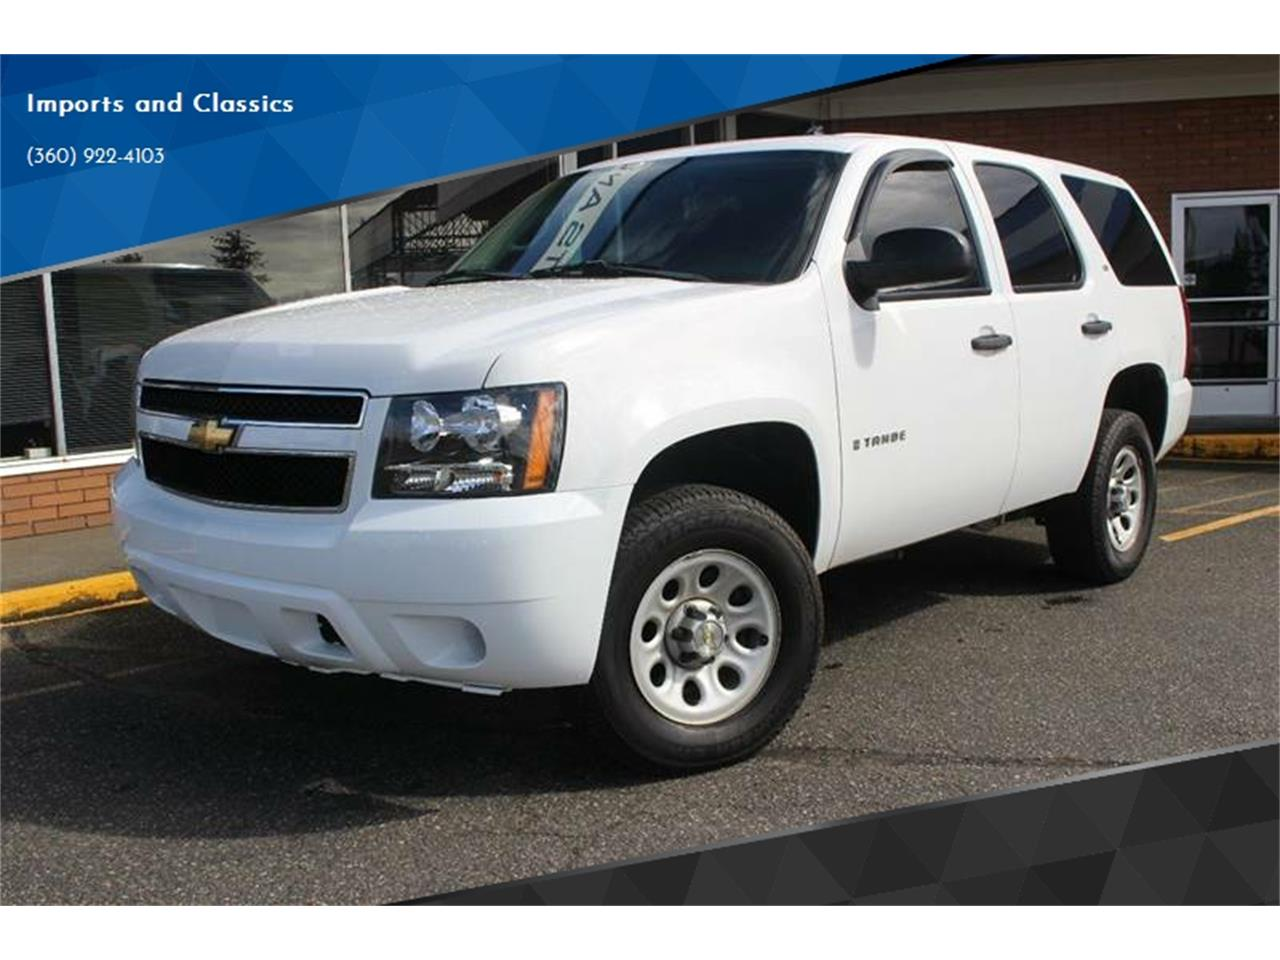 2015 Chevy Tahoe Parts Diagram ✓ All About Chevrolet 2001 Chevy Tahoe  Engine Diagram 2009 Chevy Tahoe Parts Diagram